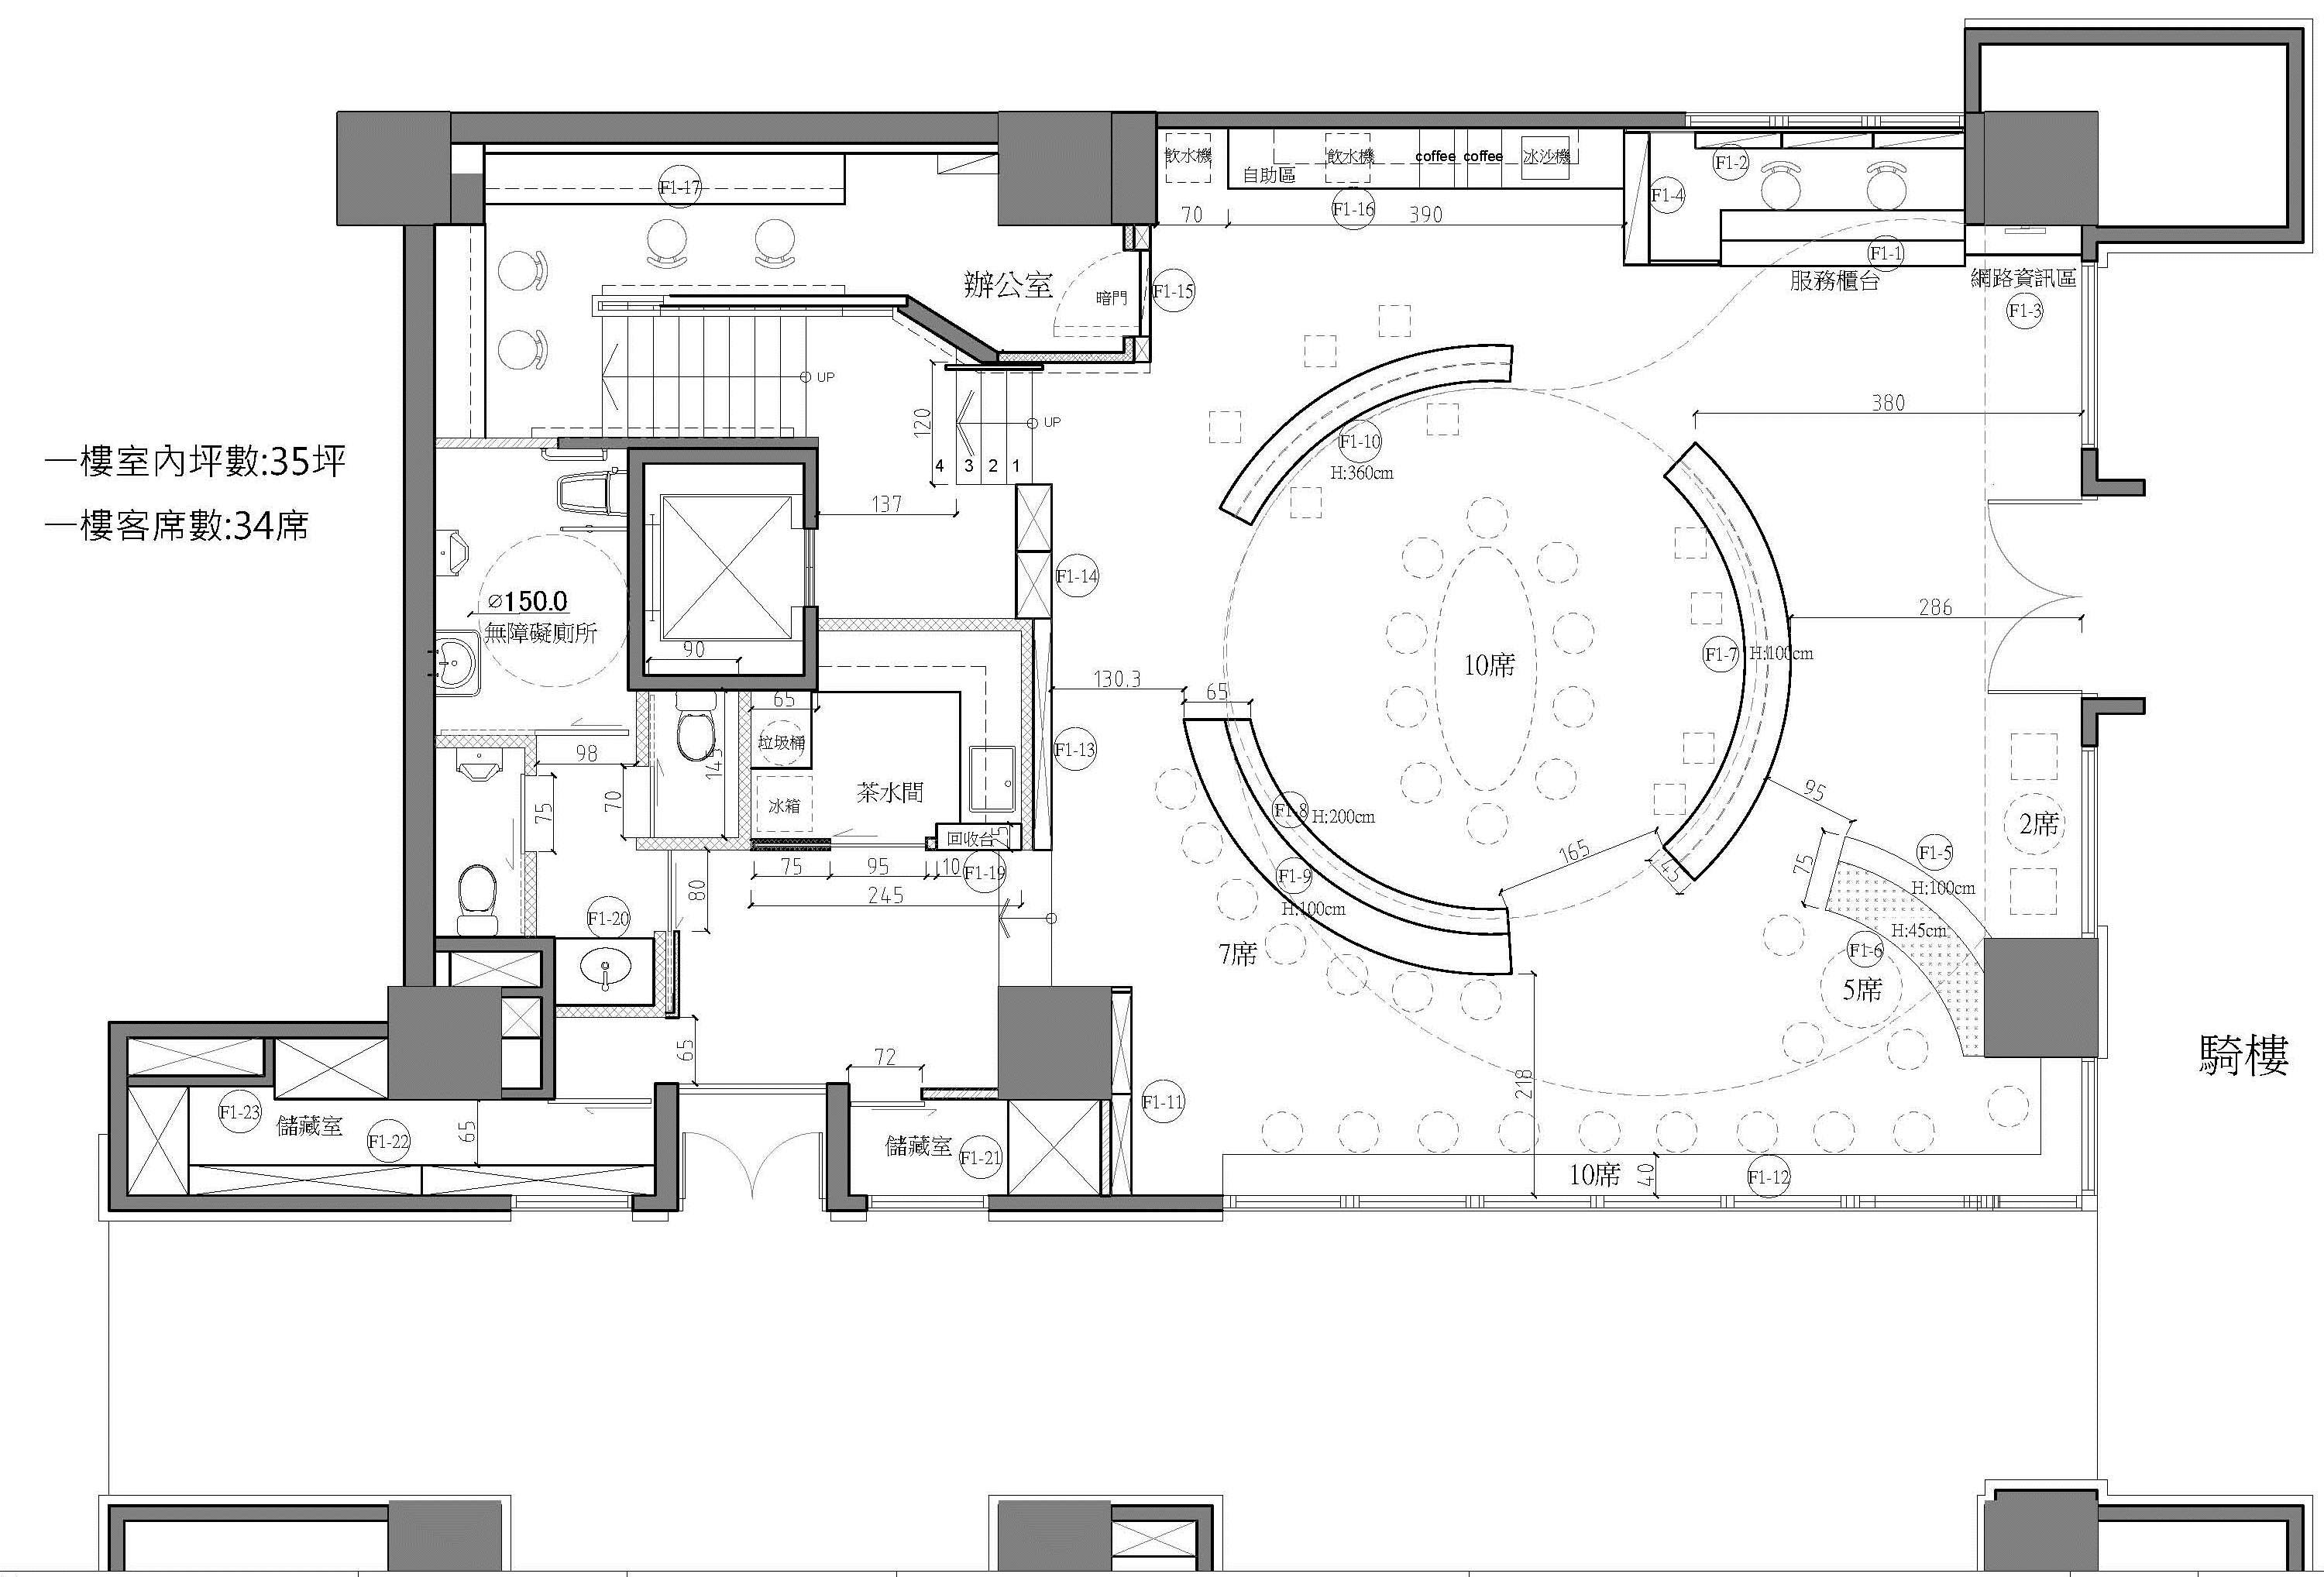 1F plan Homeyoung interior decorating and design Ltd.}